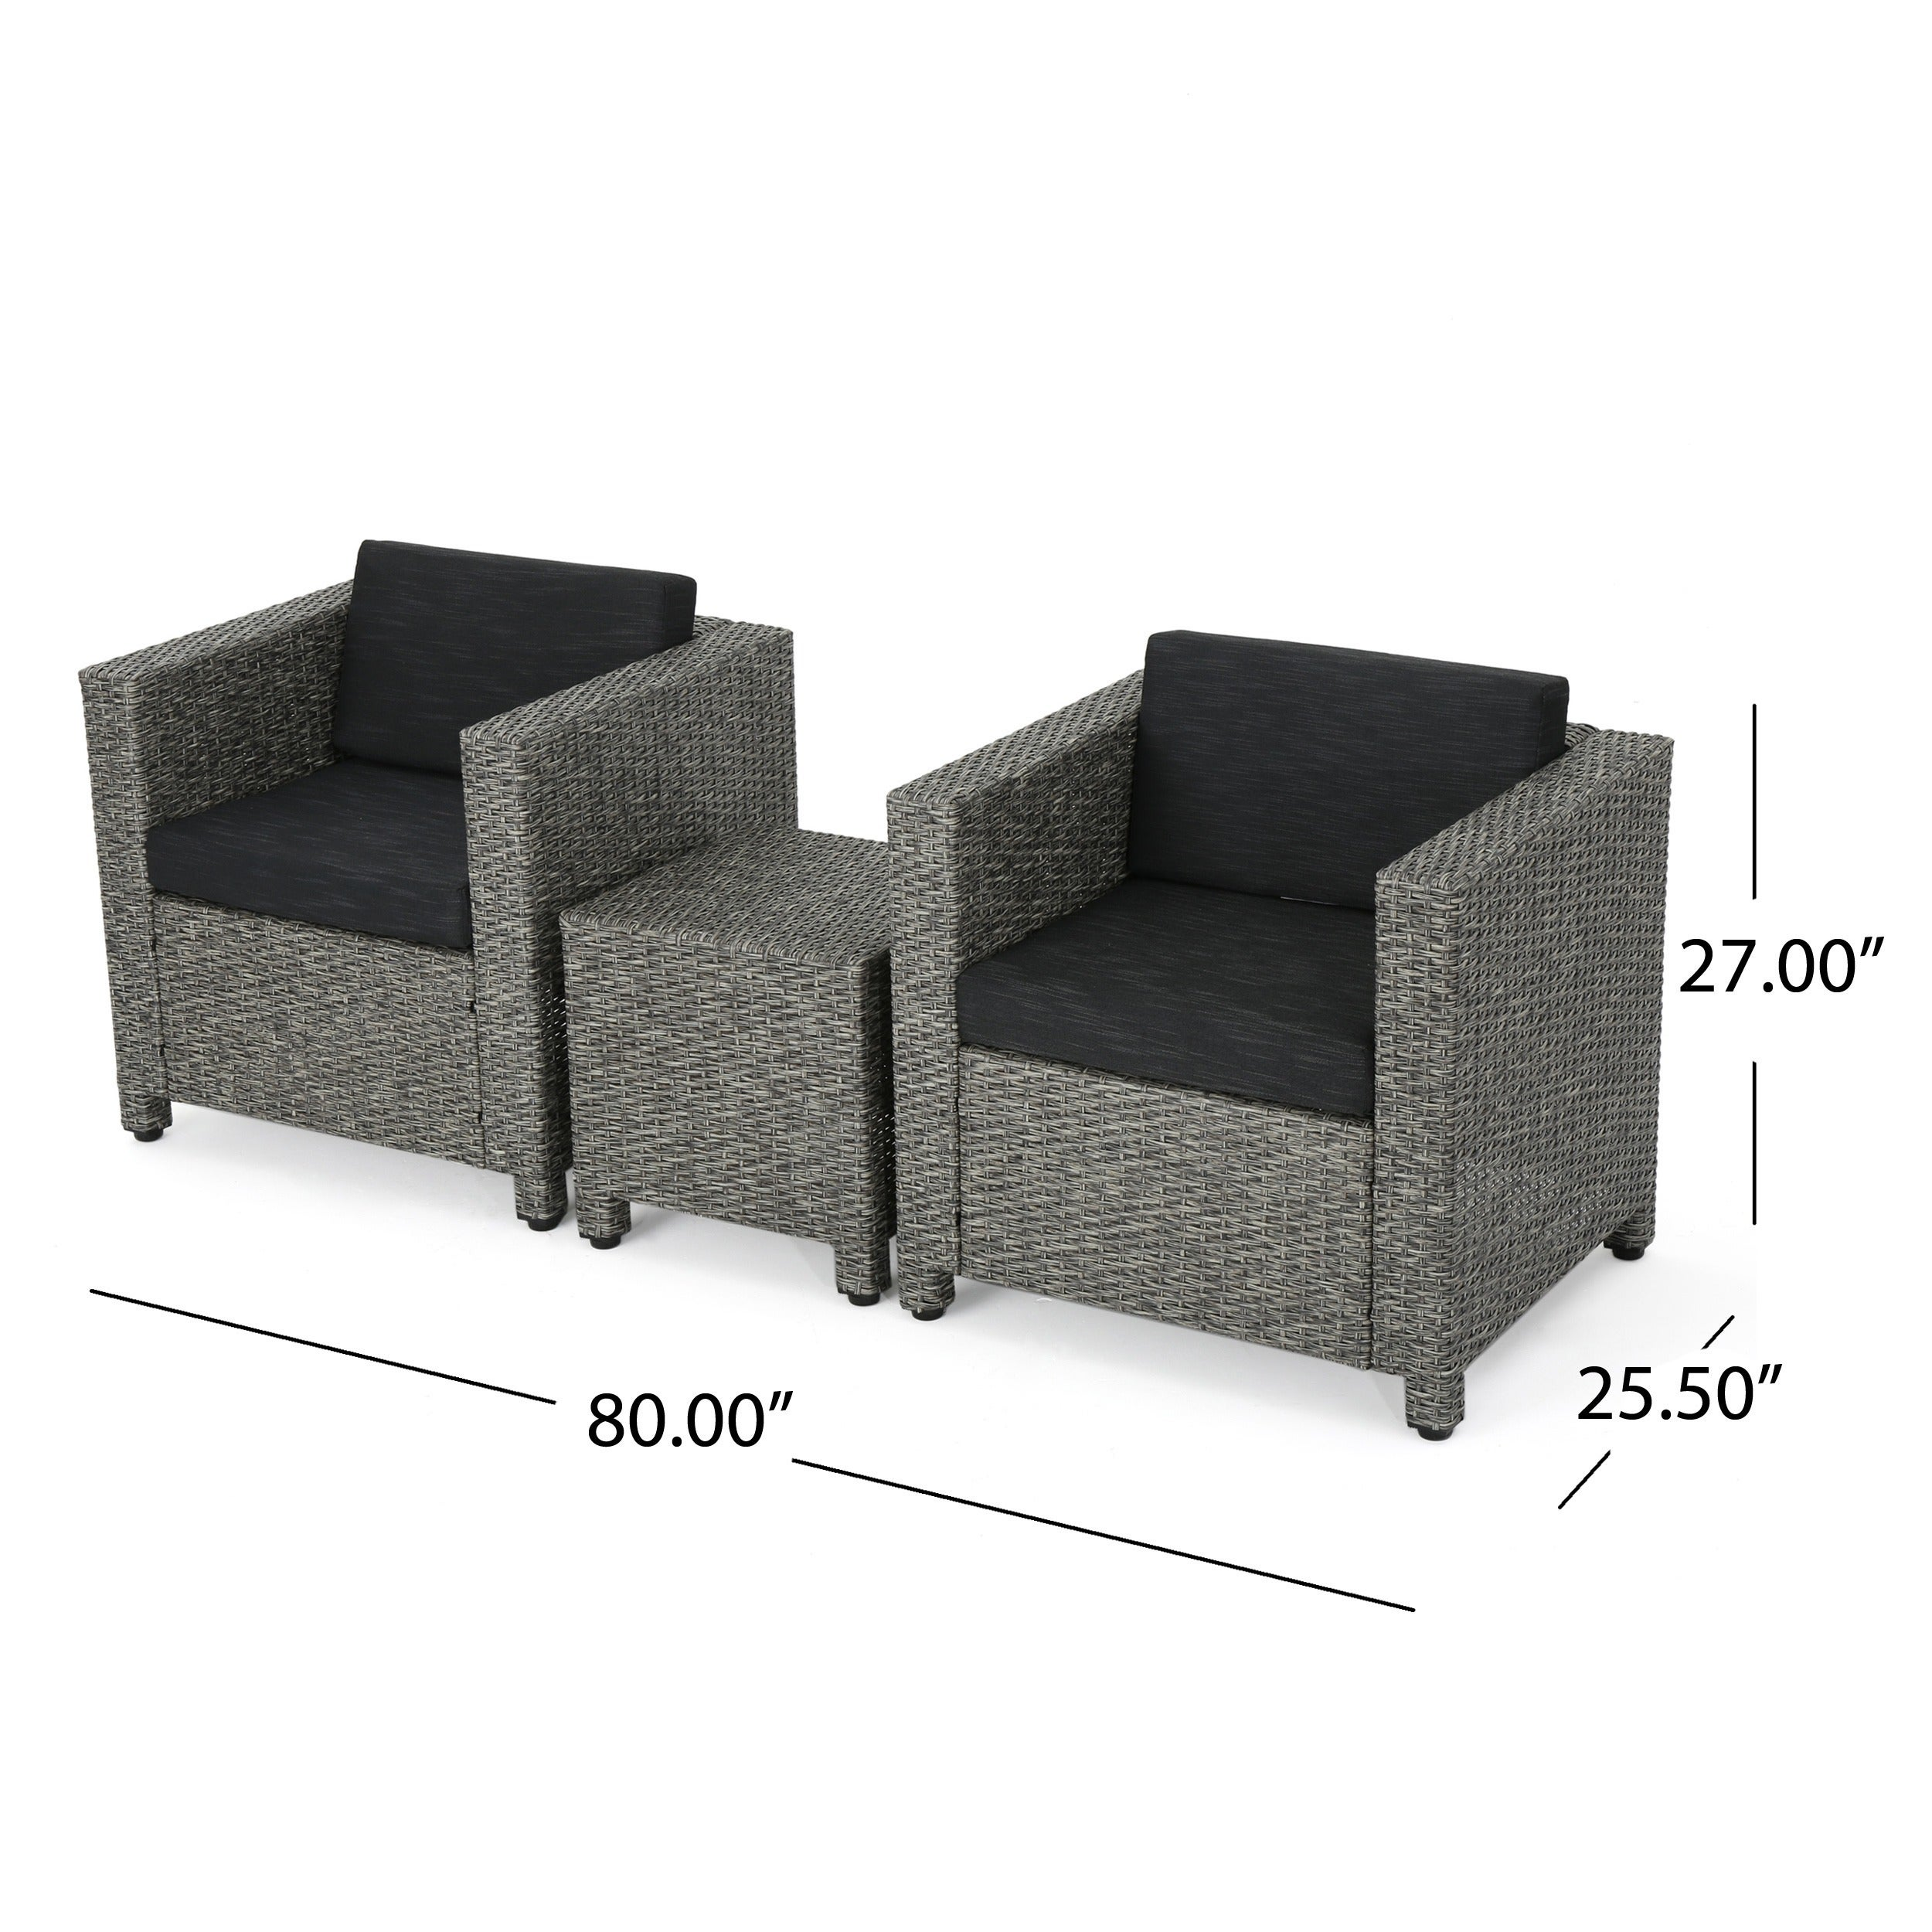 christopher knight home puerta grey outdoor wicker sofa set. Puerta Outdoor 3-piece Wicker Seating Set With Cushions By Christopher Knight Home - Free Shipping Today Overstock 22063052 Grey Sofa